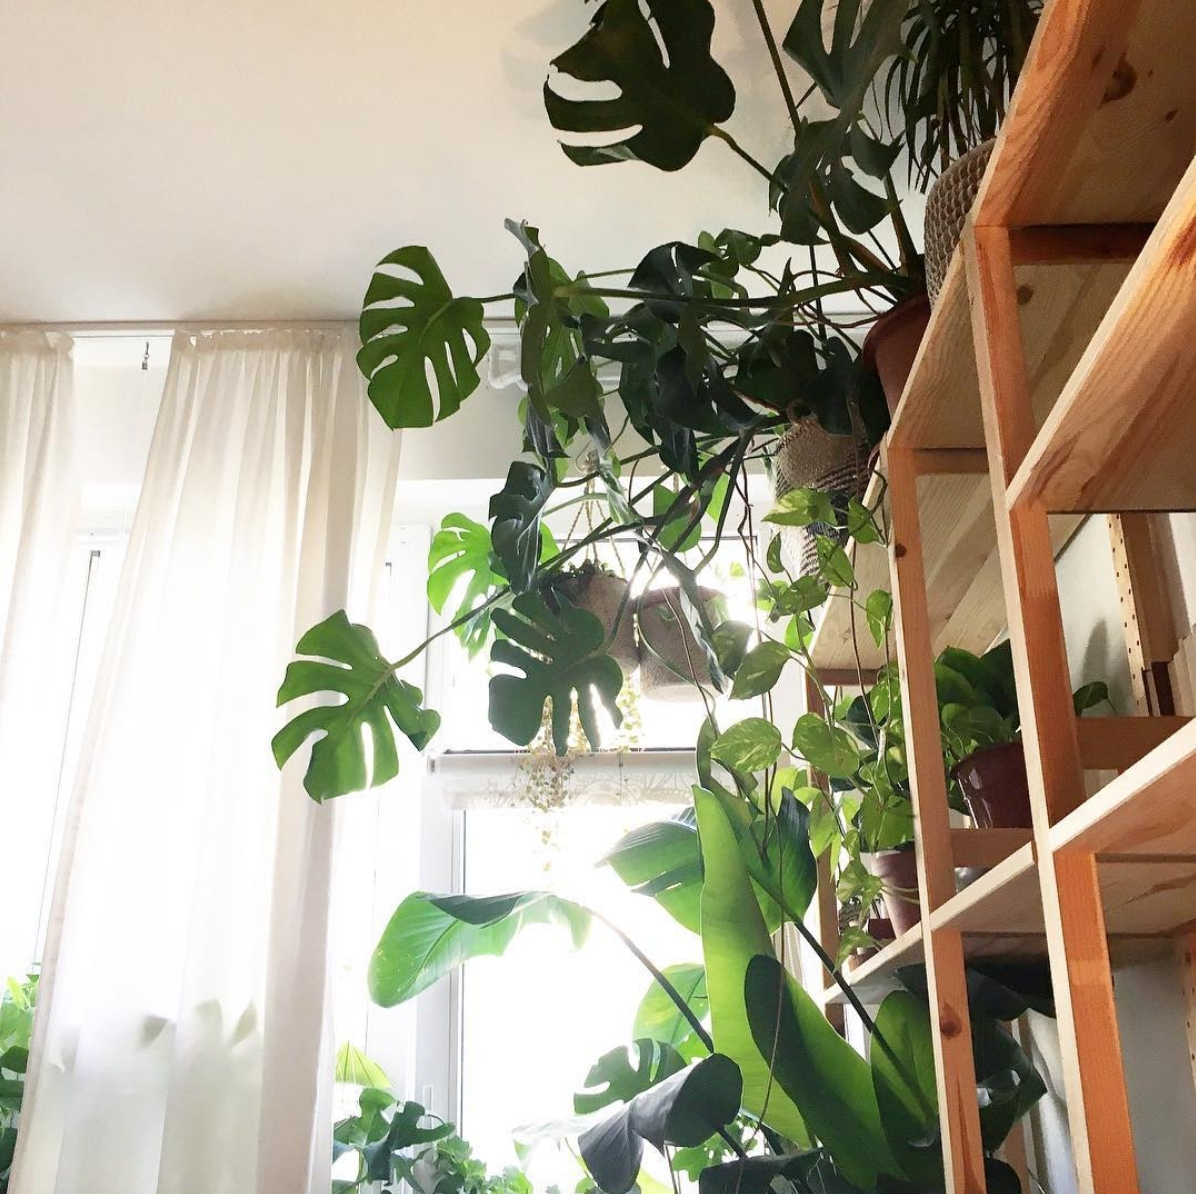 Welcome to the jungle 🌿🍃 #monstera #plants #plantlover #einrichtung #zimmerpflanzen #urbanjungle #schlafzimmer